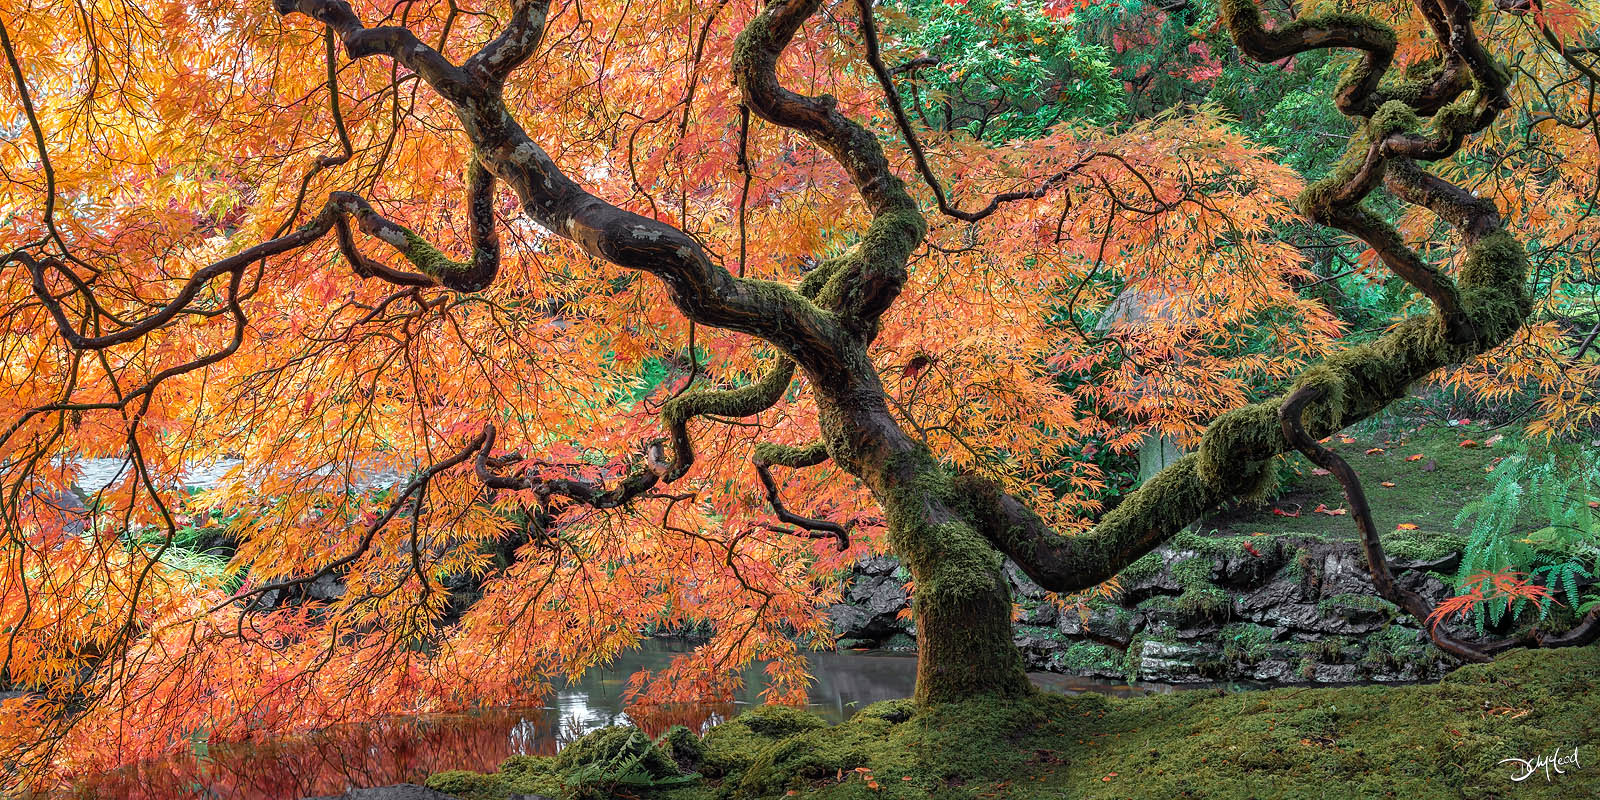 Mossy Japanese maple tree with orange leaves in Butchart Gardens, BC, Canada.